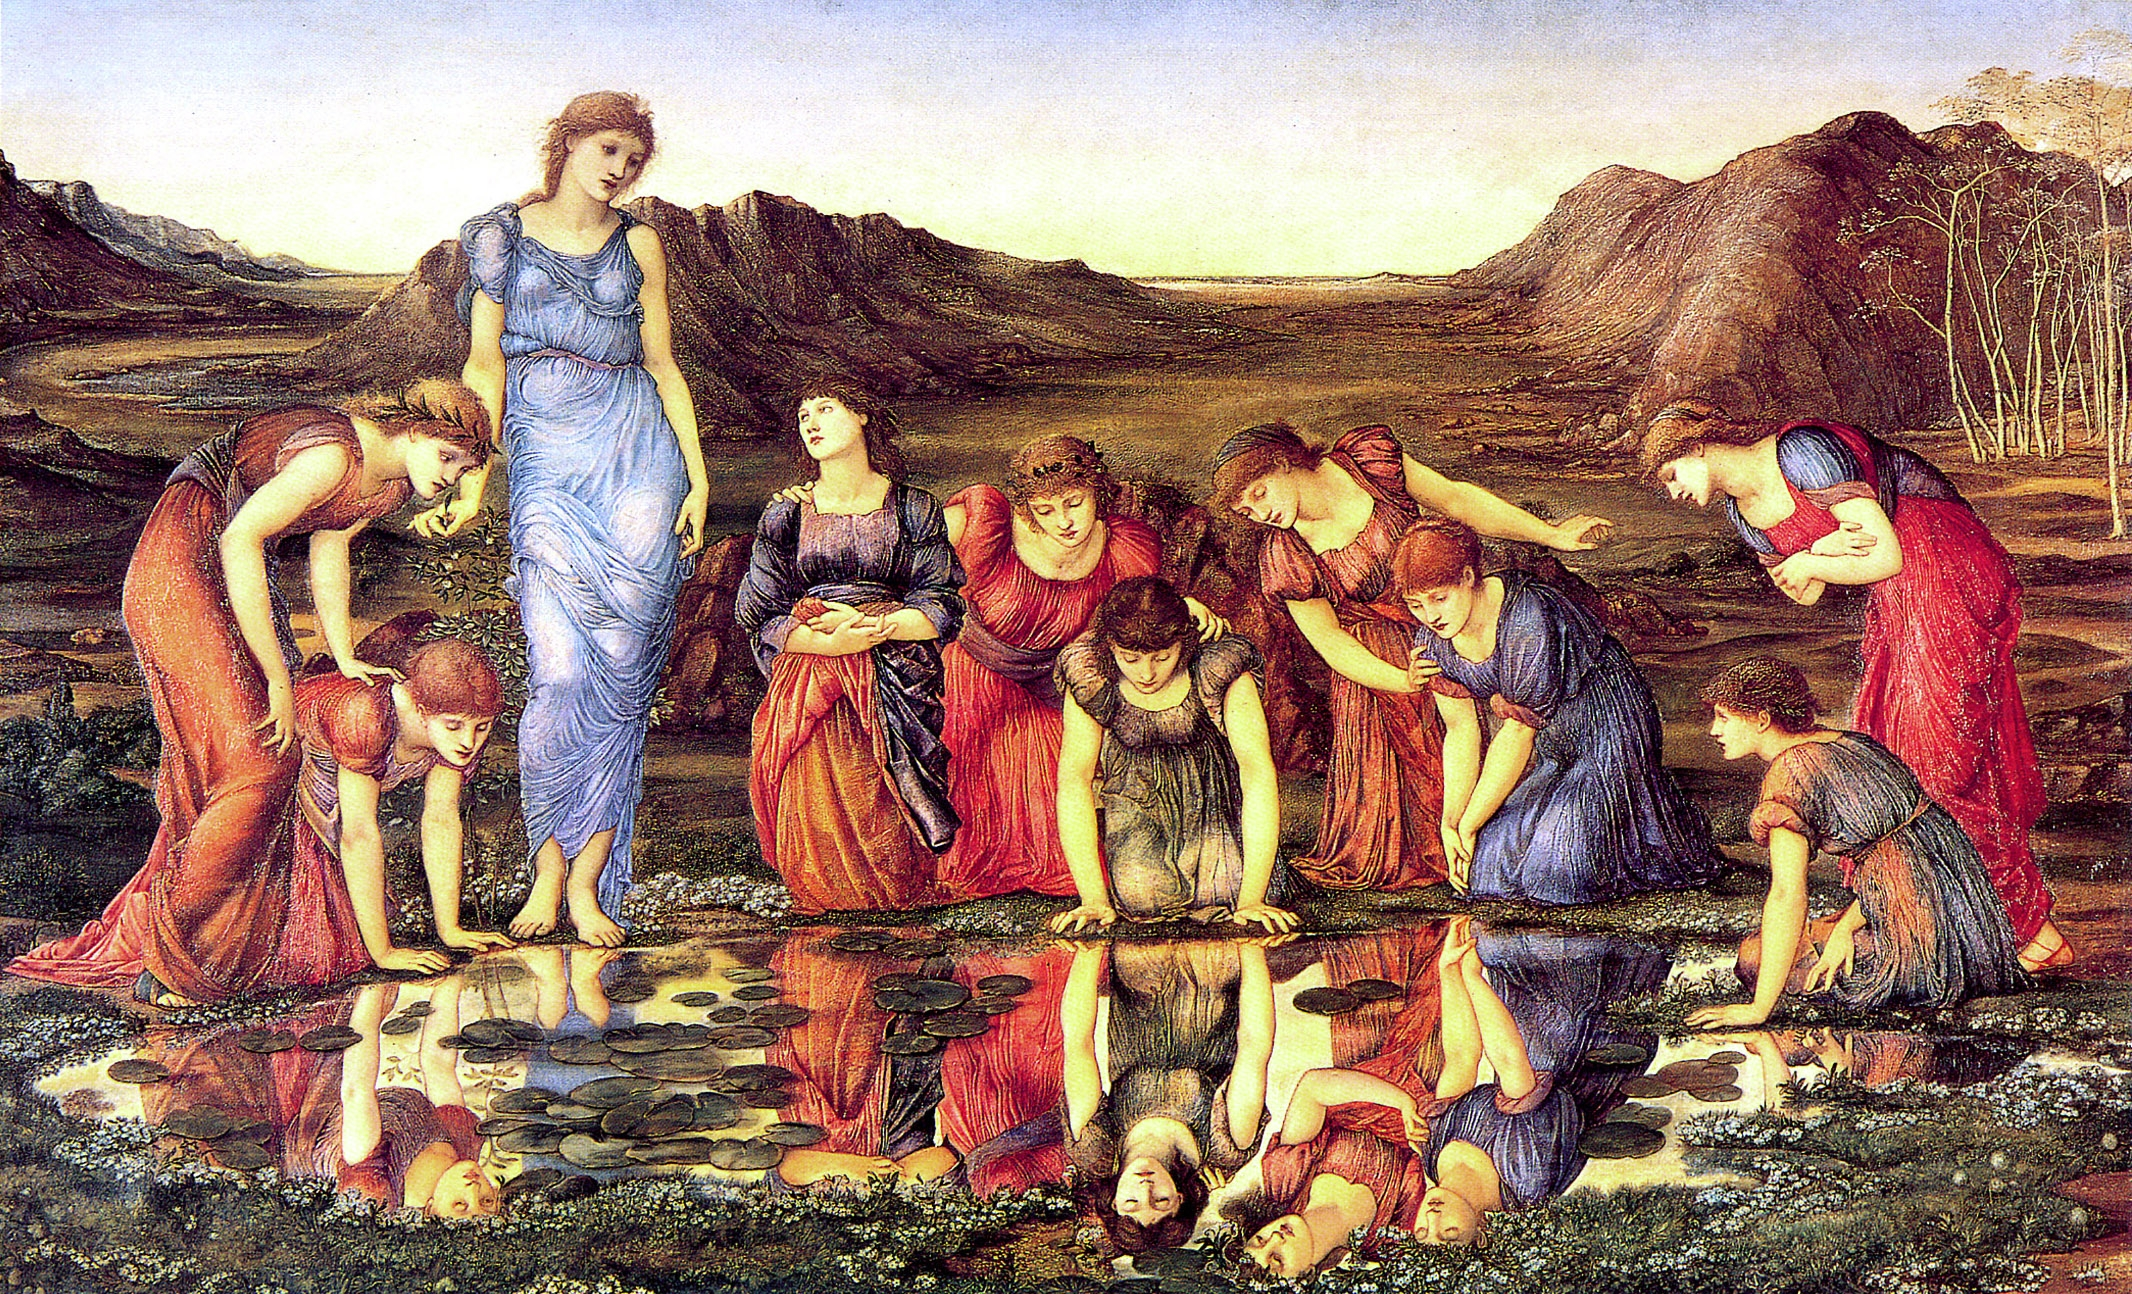 https://upload.wikimedia.org/wikipedia/commons/f/f0/Burne-Jones%2C_Edward_-_The_Mirror_of_Venus_-_1875_-_hi_res.jpg